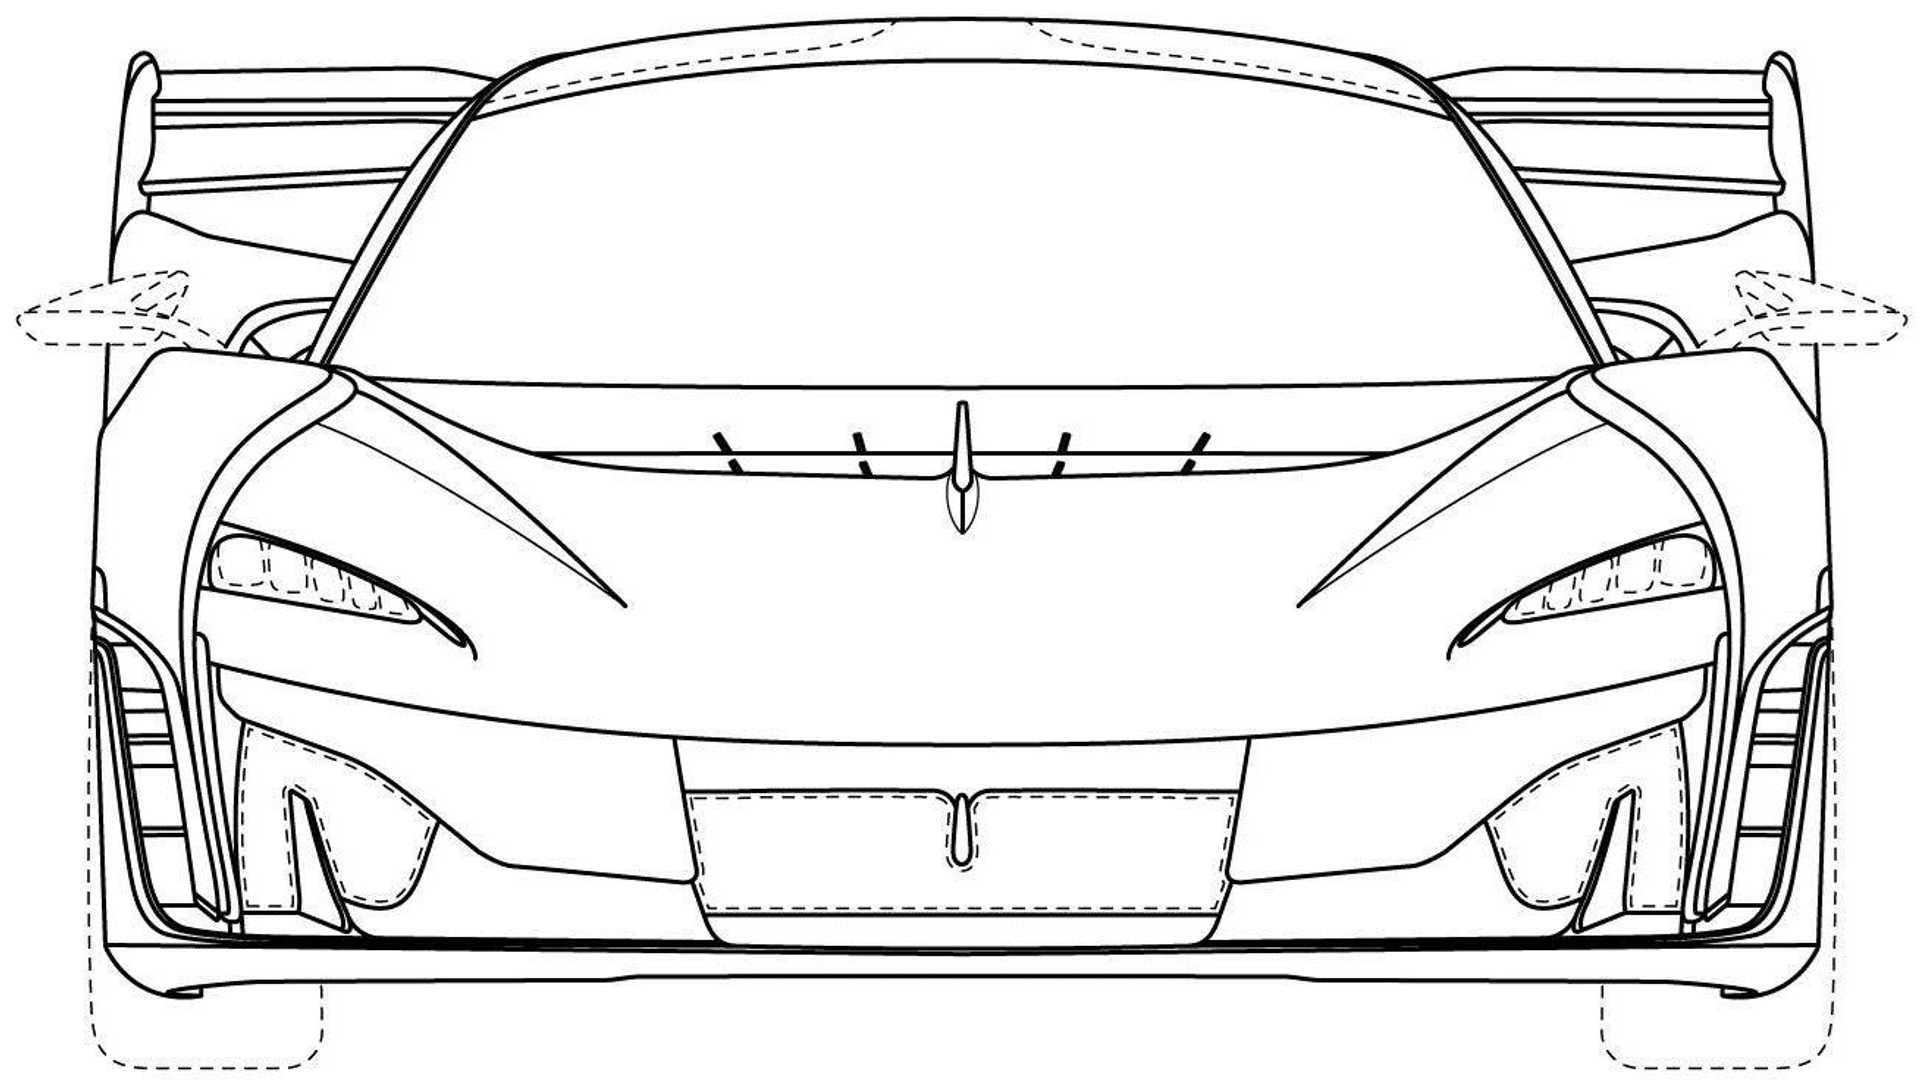 mclaren-ultimate-series-design-trademark-front